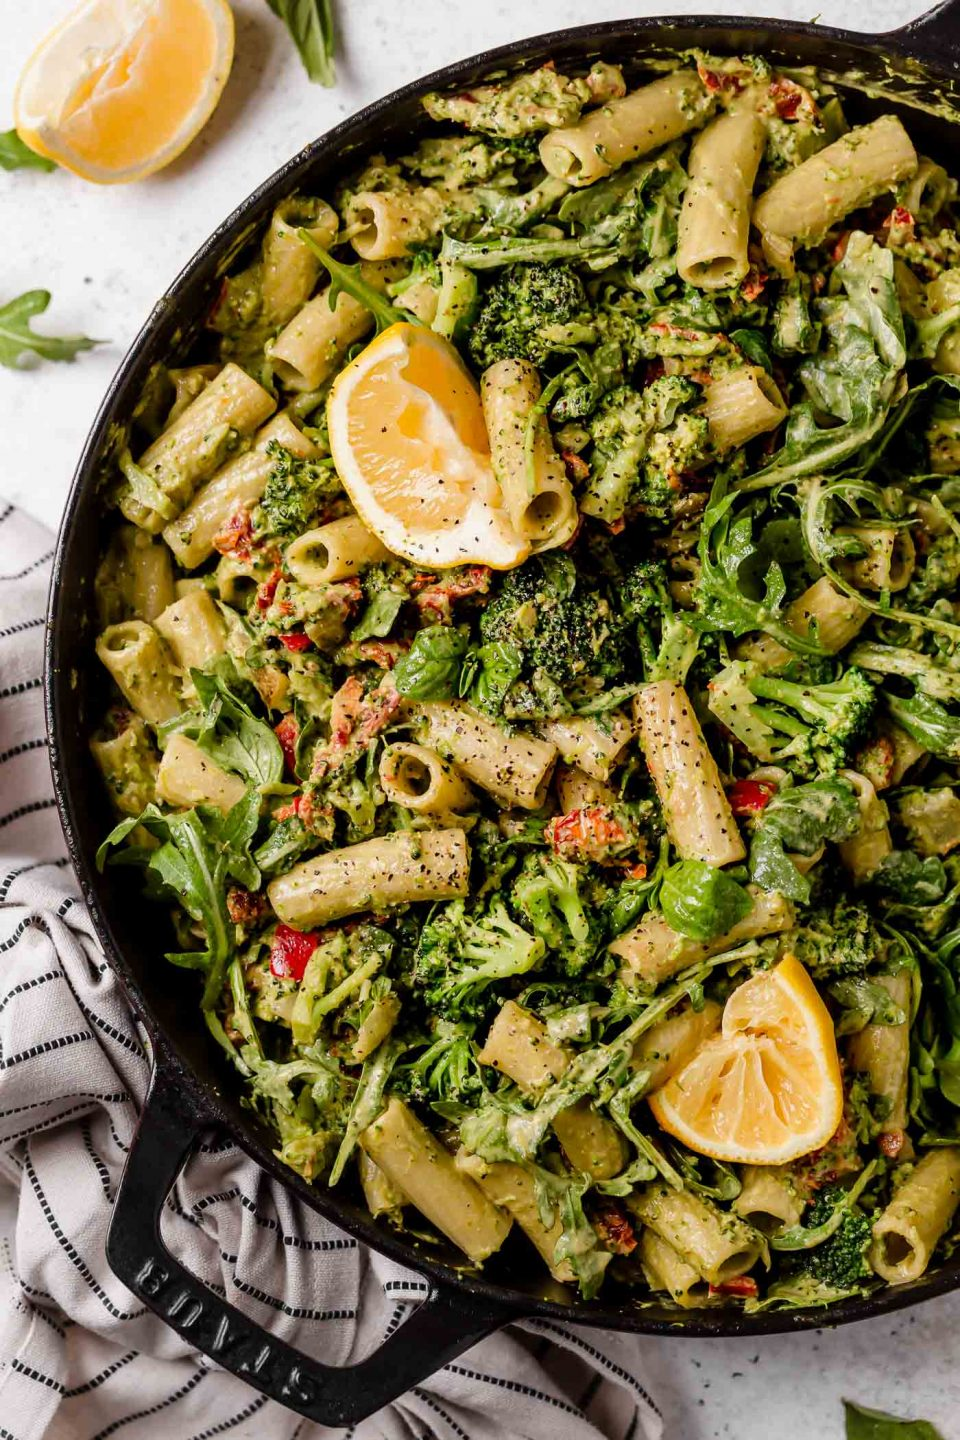 Creamy vegan pasta, tossed with broccoli, bell peppers, & arugula, served in a Staub skillet. The skillet is placed on a white surface next to a black & white striped linen.